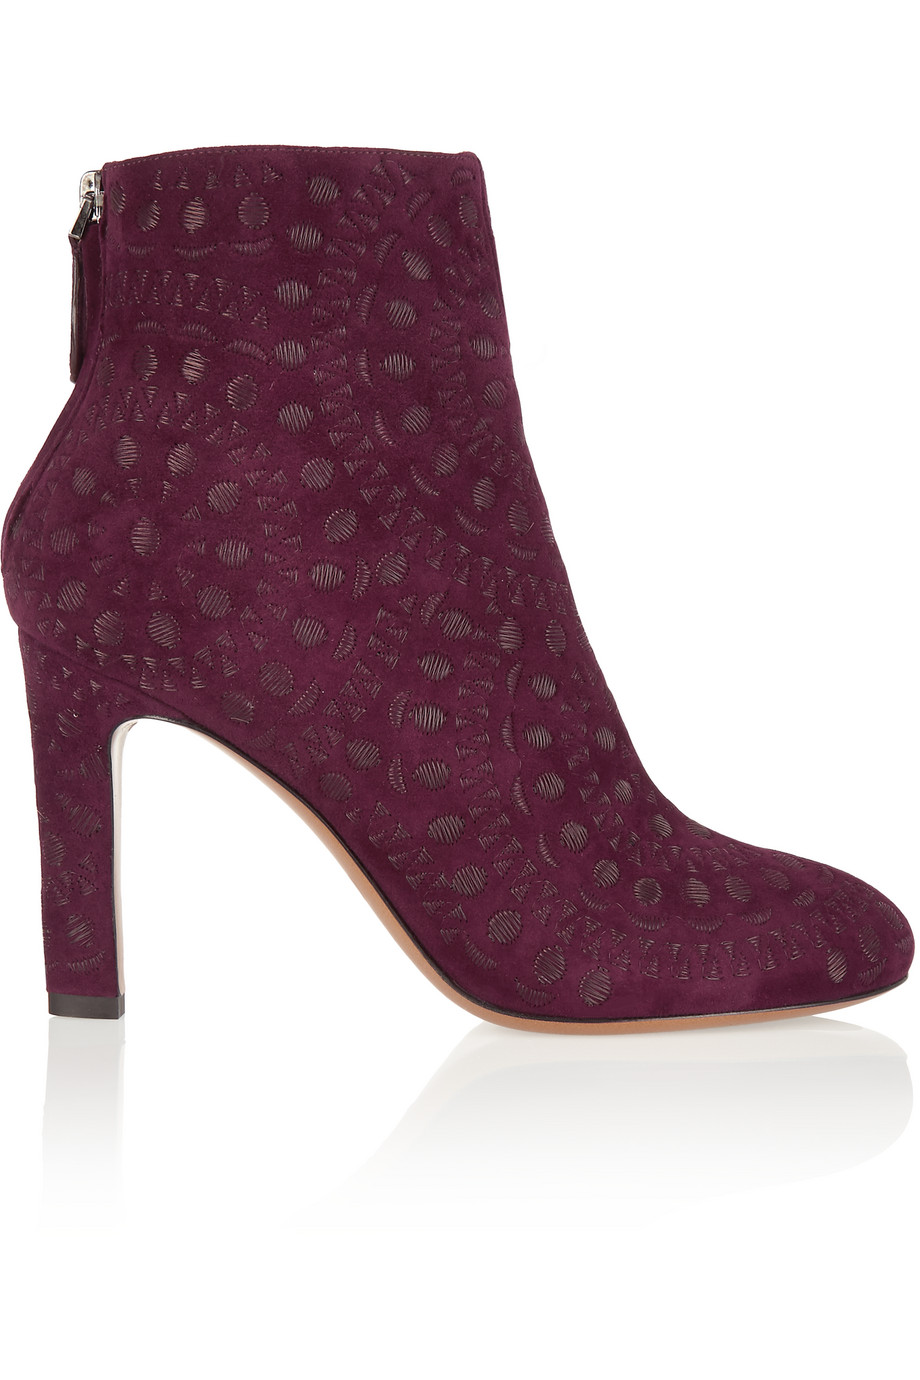 Alaïa Embroidered Suede Ankle Boots, Merlot, Women's US Size: 9, Size: 39.5